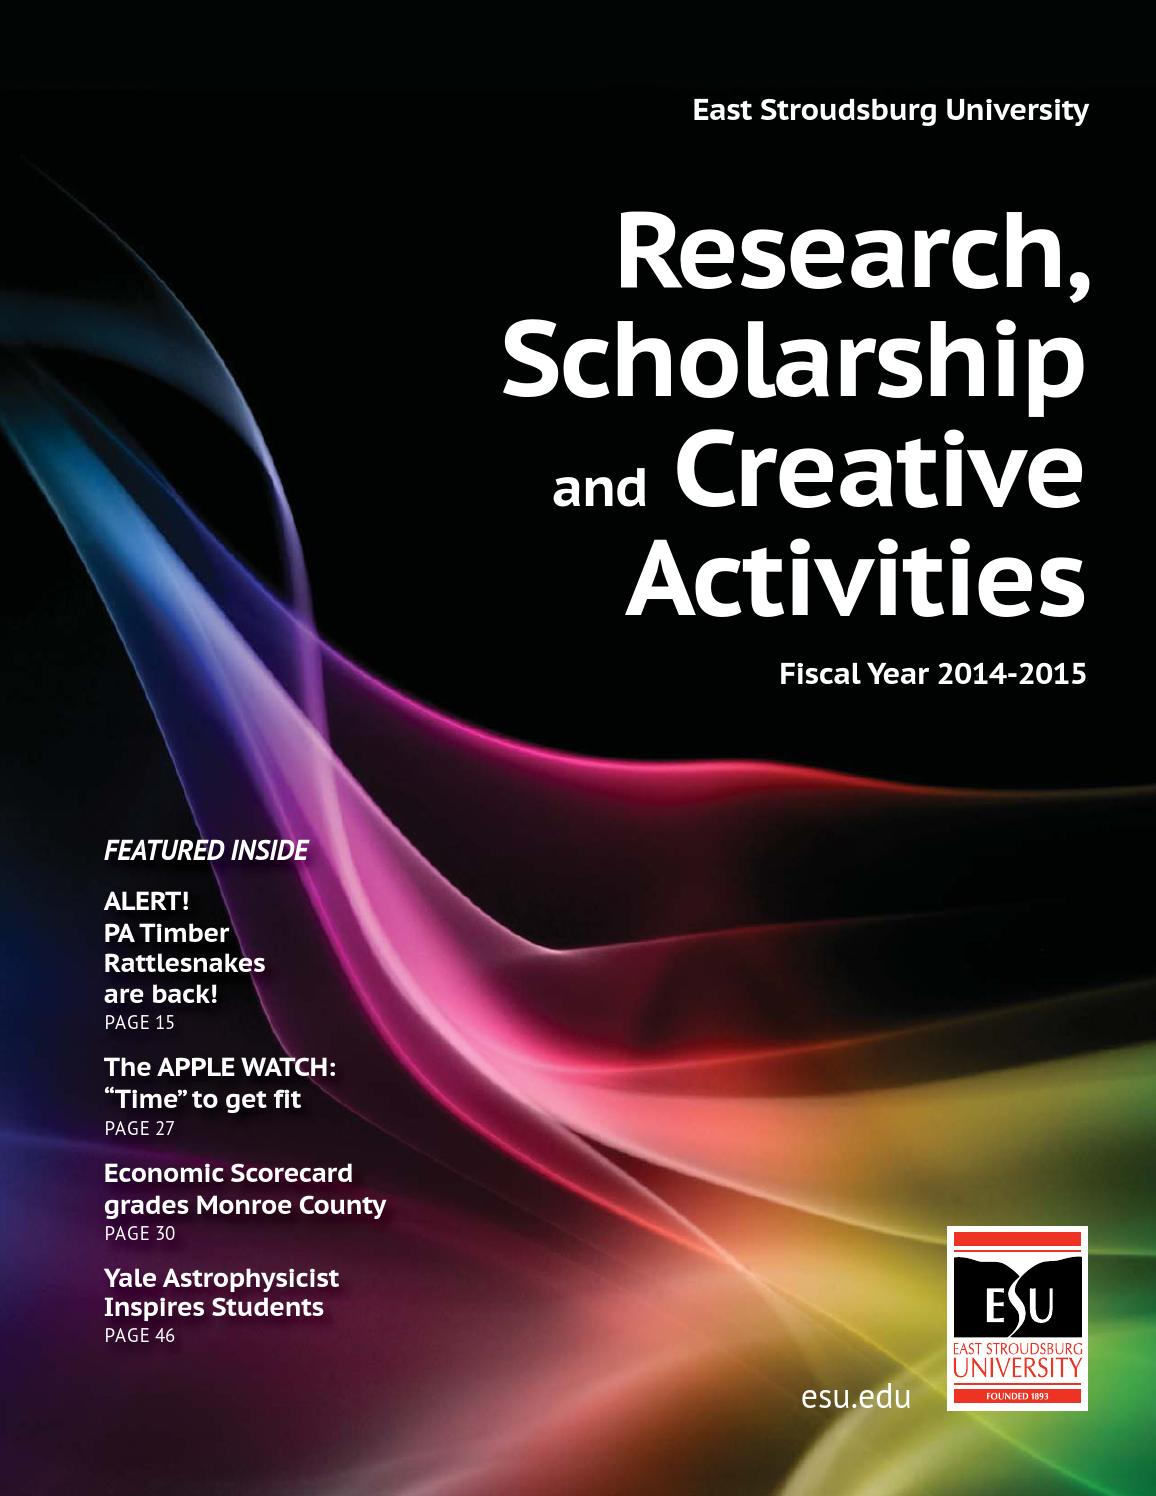 Research, Scholarship and Creative Activities 2014-2015 by